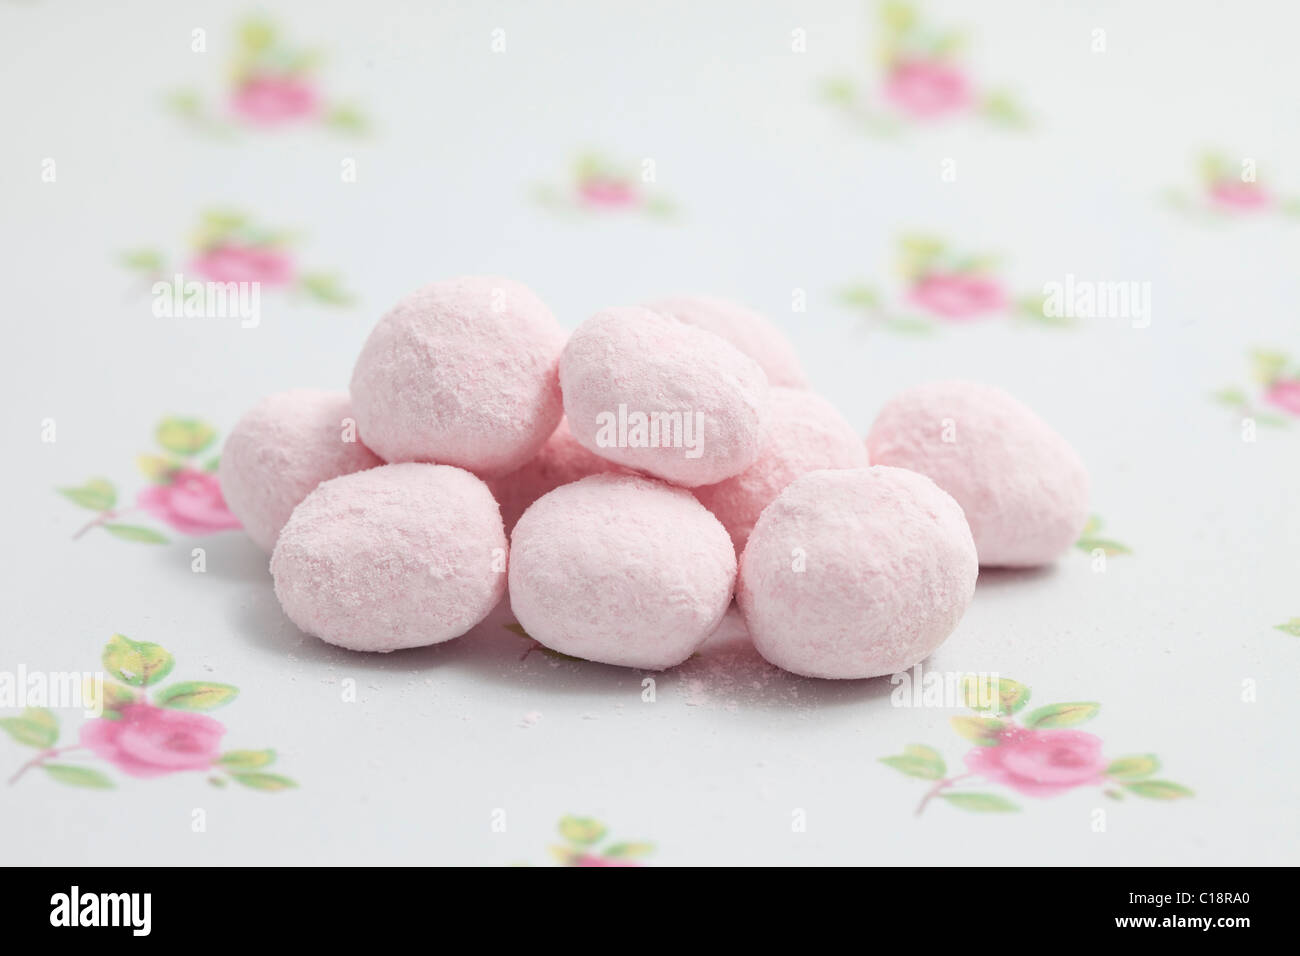 strawberry bonbons sweets and candy on a paper background photographed in a studio - Stock Image